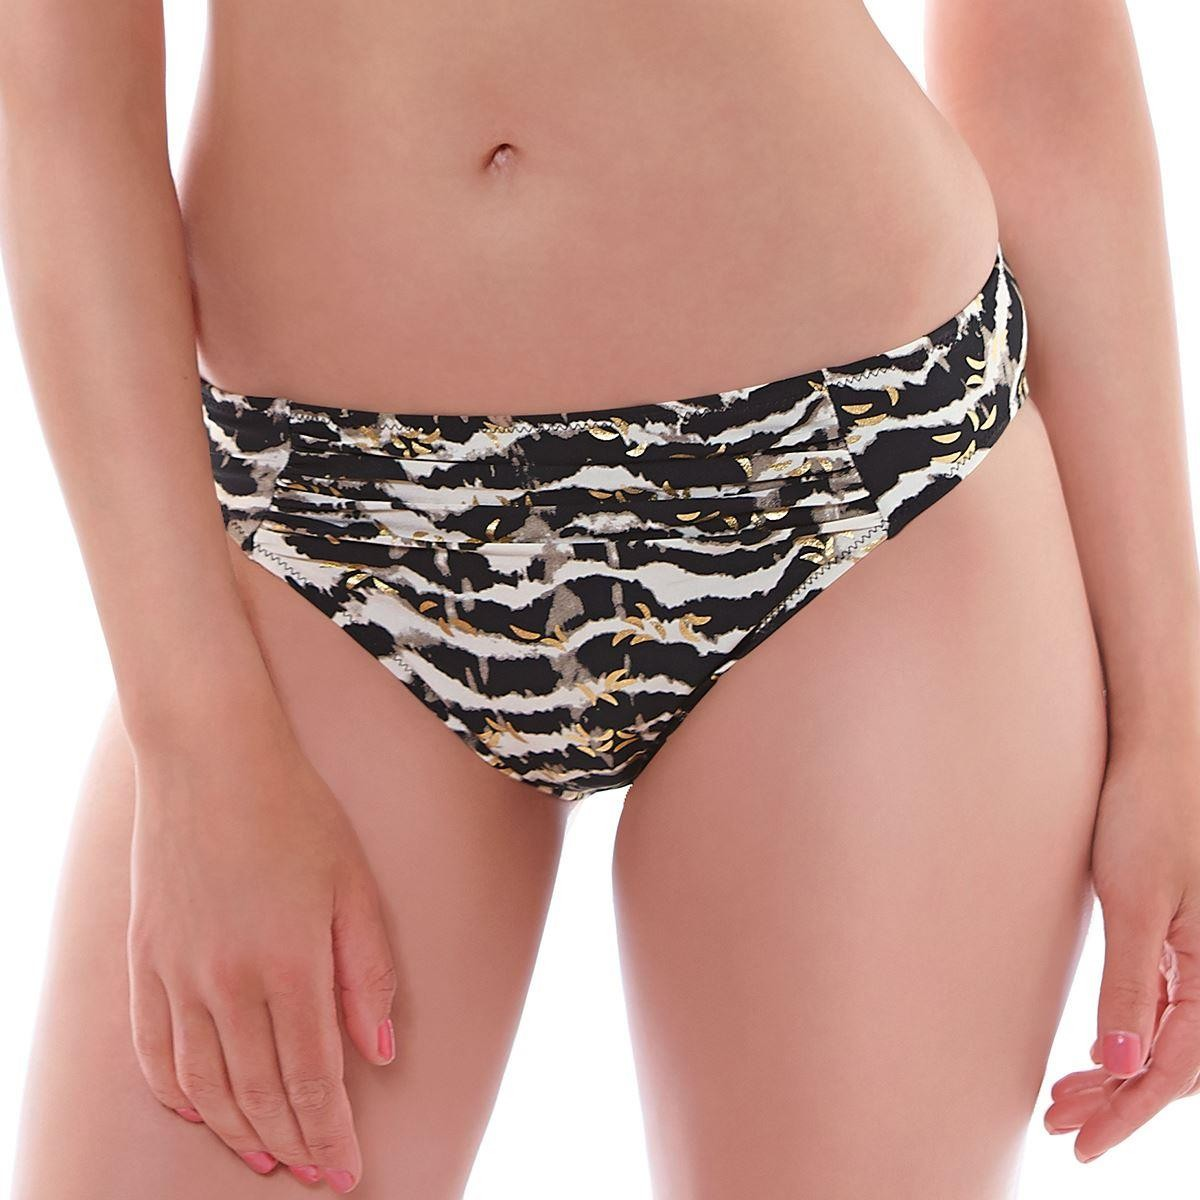 Fantasie Milos Classic Gathered Bikini Brief - Black/Cream